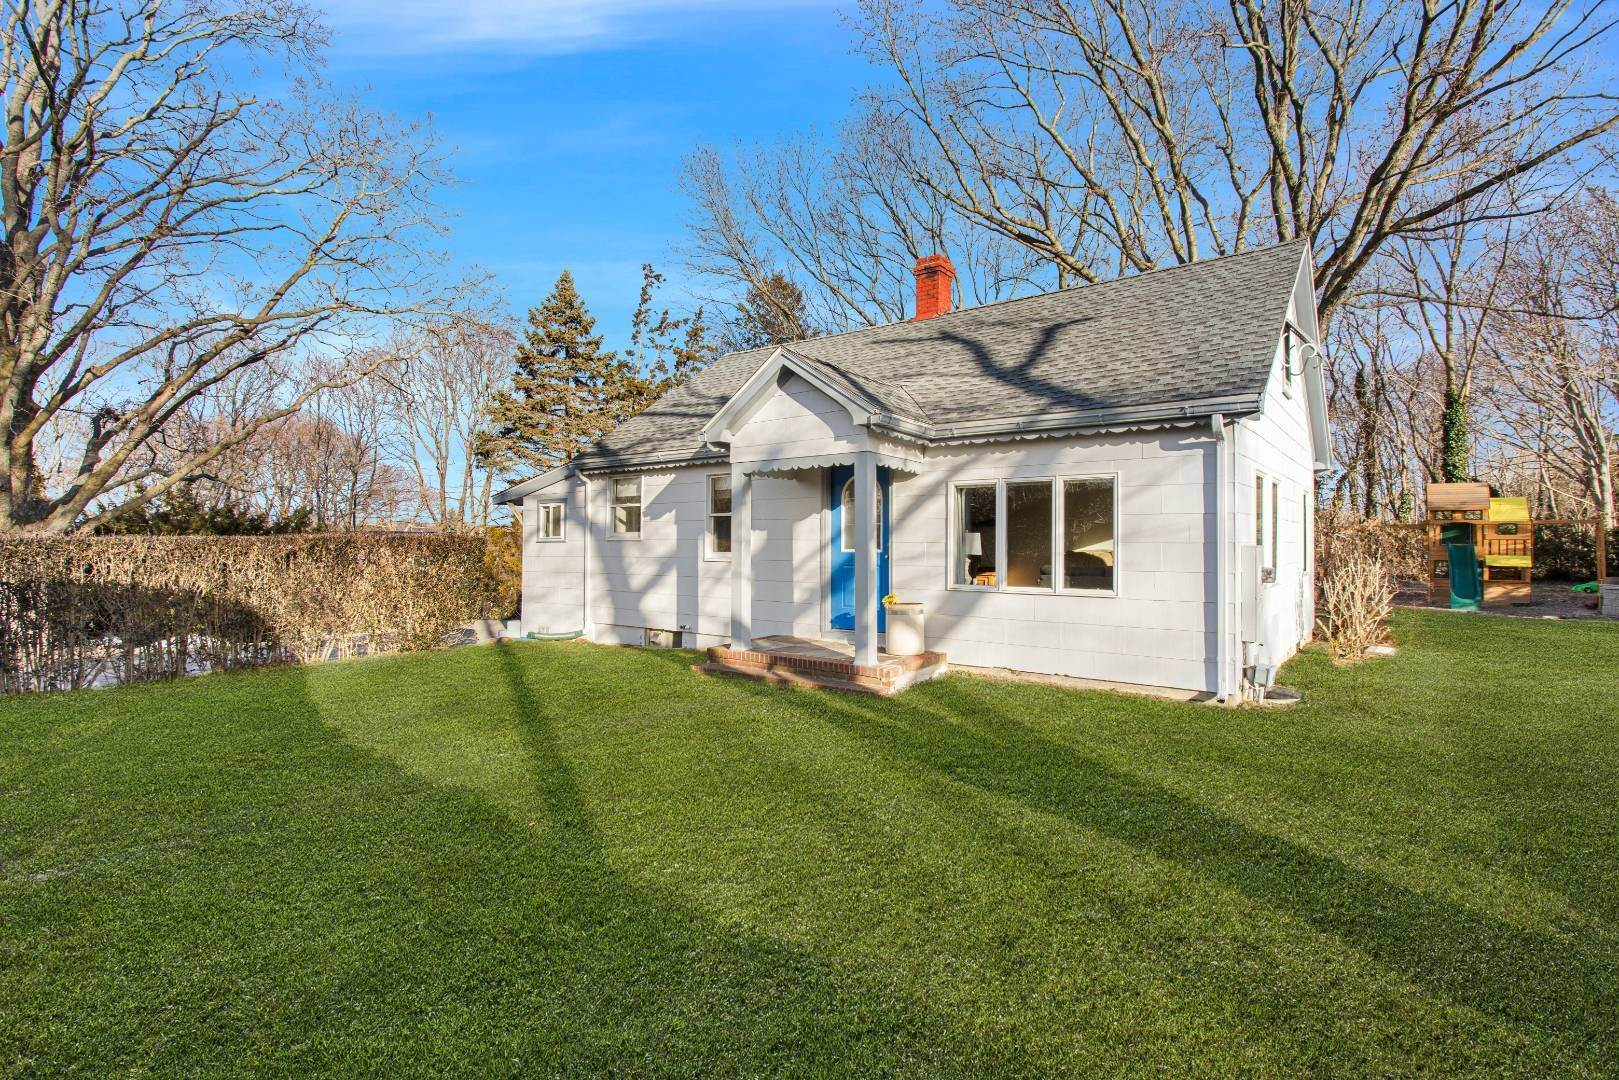 Single Family Home for Sale at Wine Country Beach Home 230 1st Street, Cutchogue, NY 11935